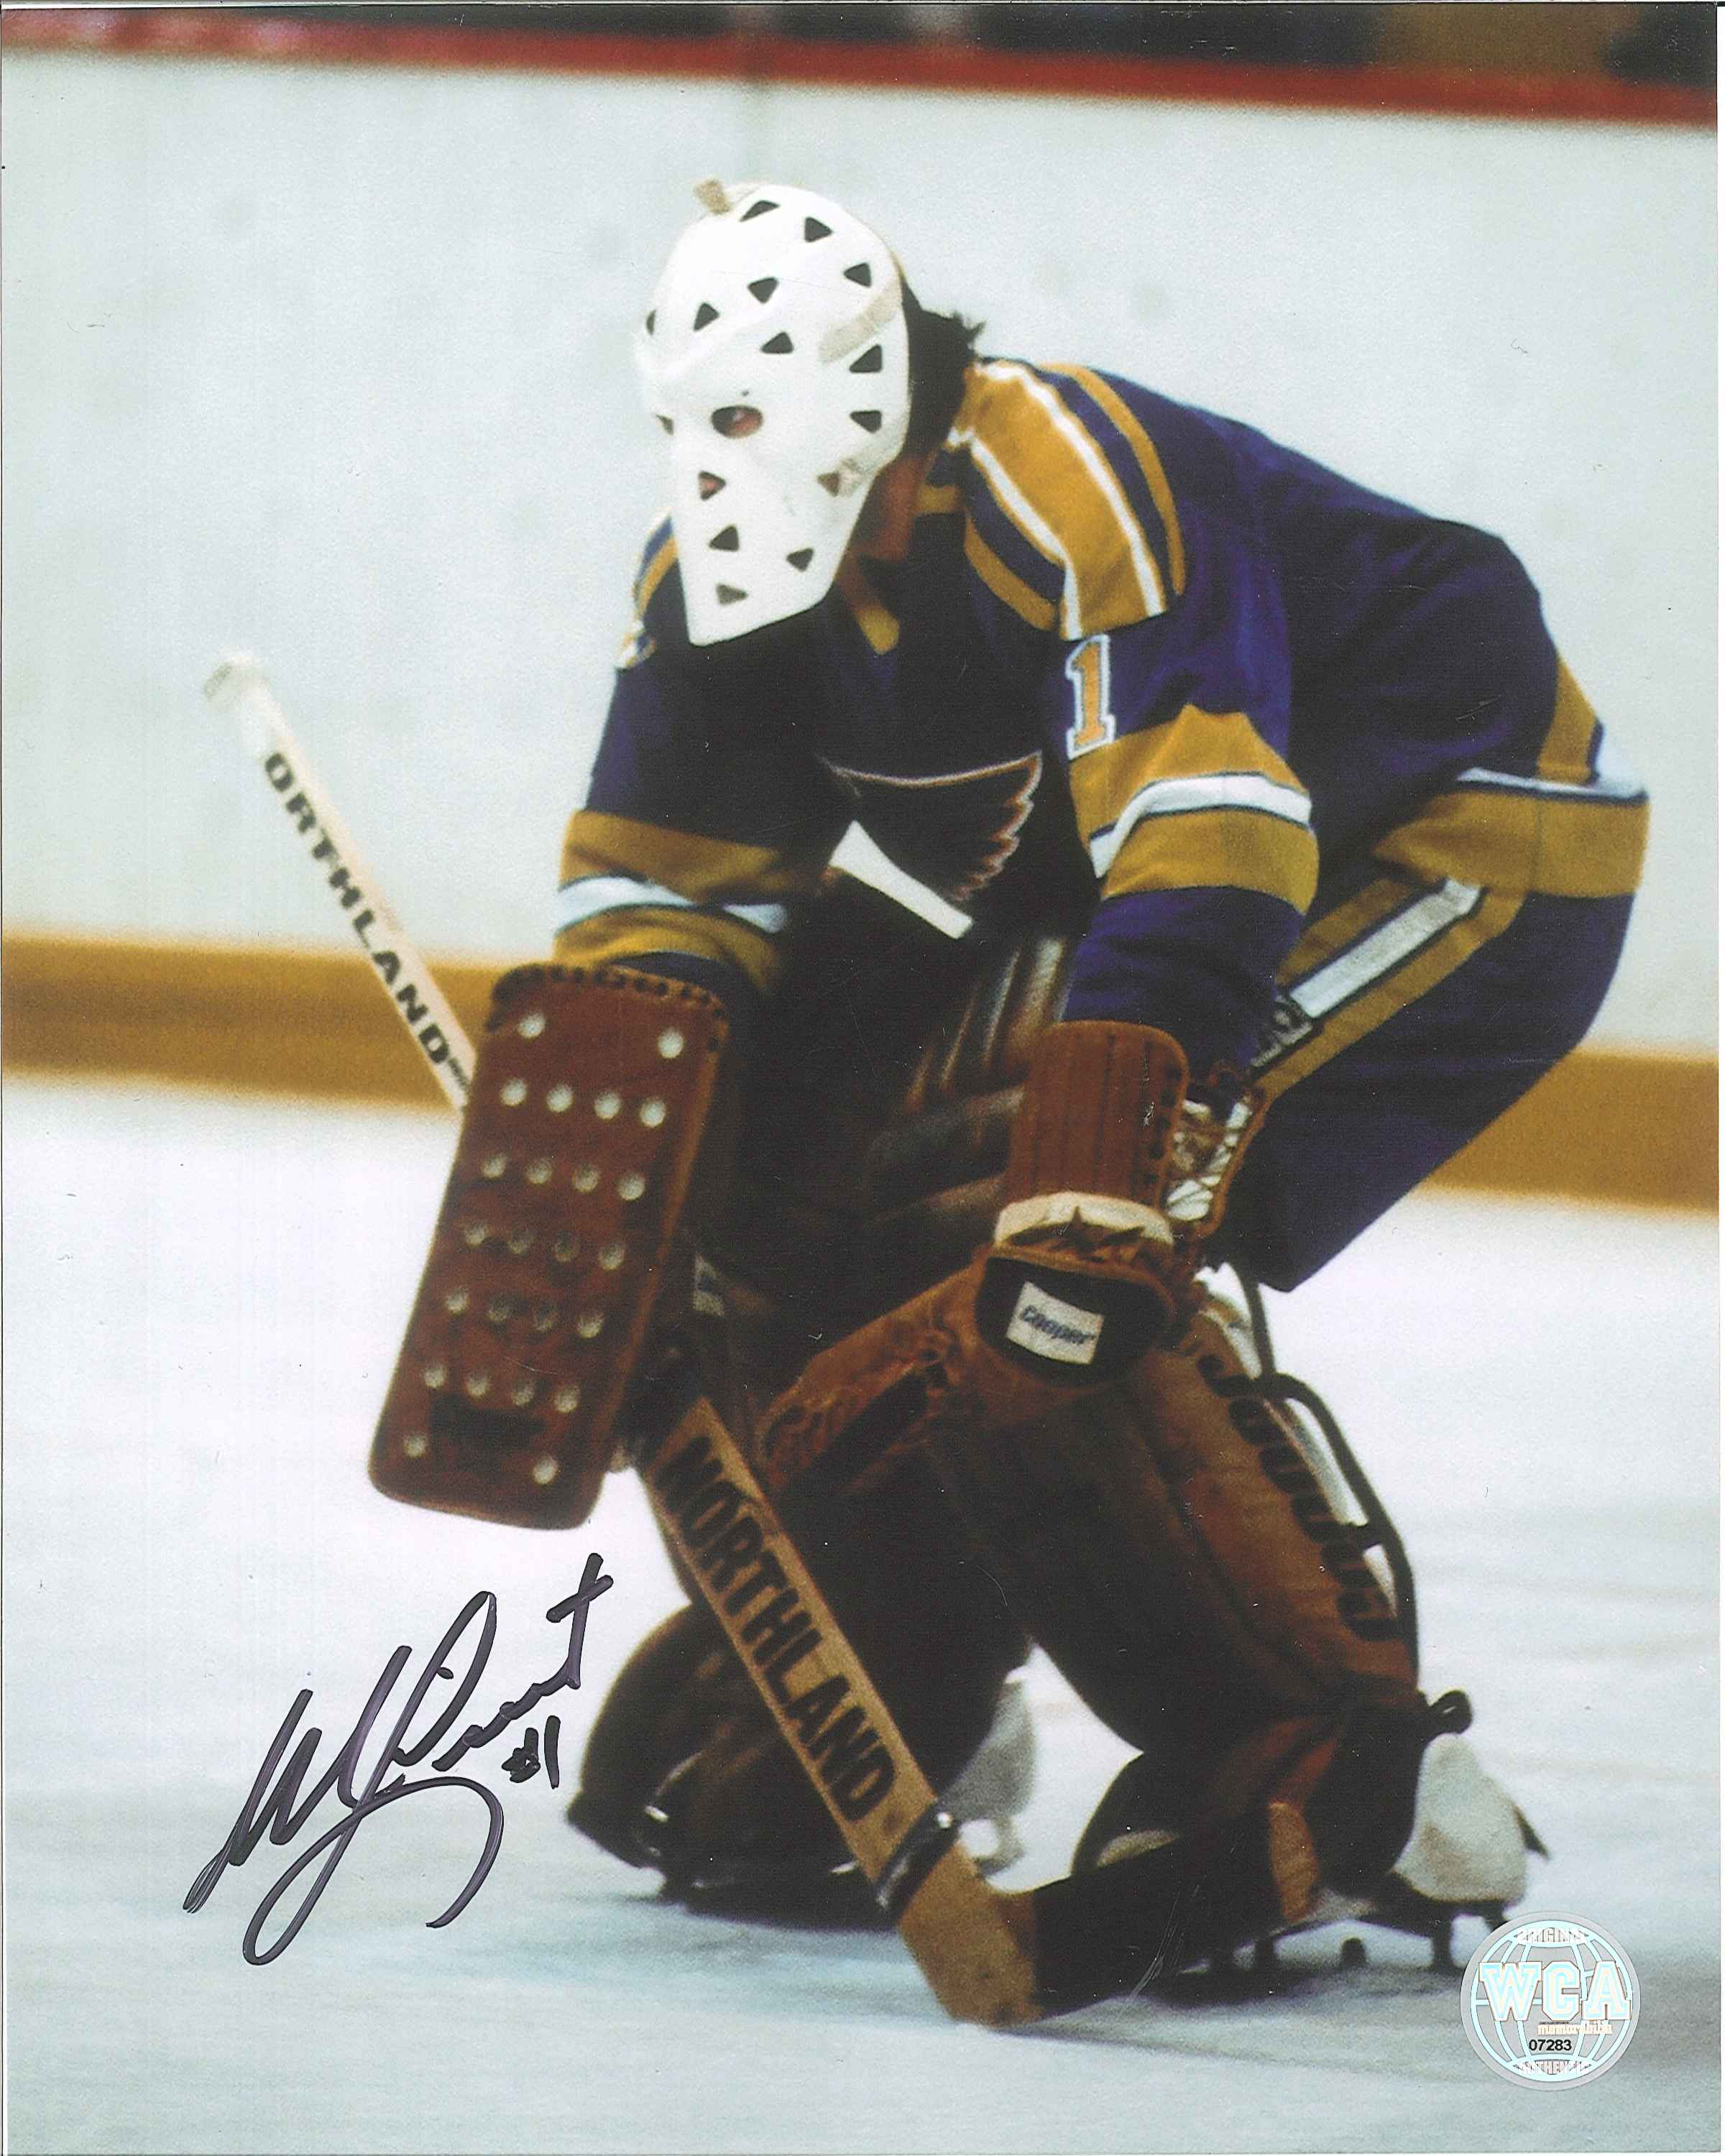 West_Coast_Authentic_NHL_Blues_Mike_Liut_Autographed_Photo4.jpg